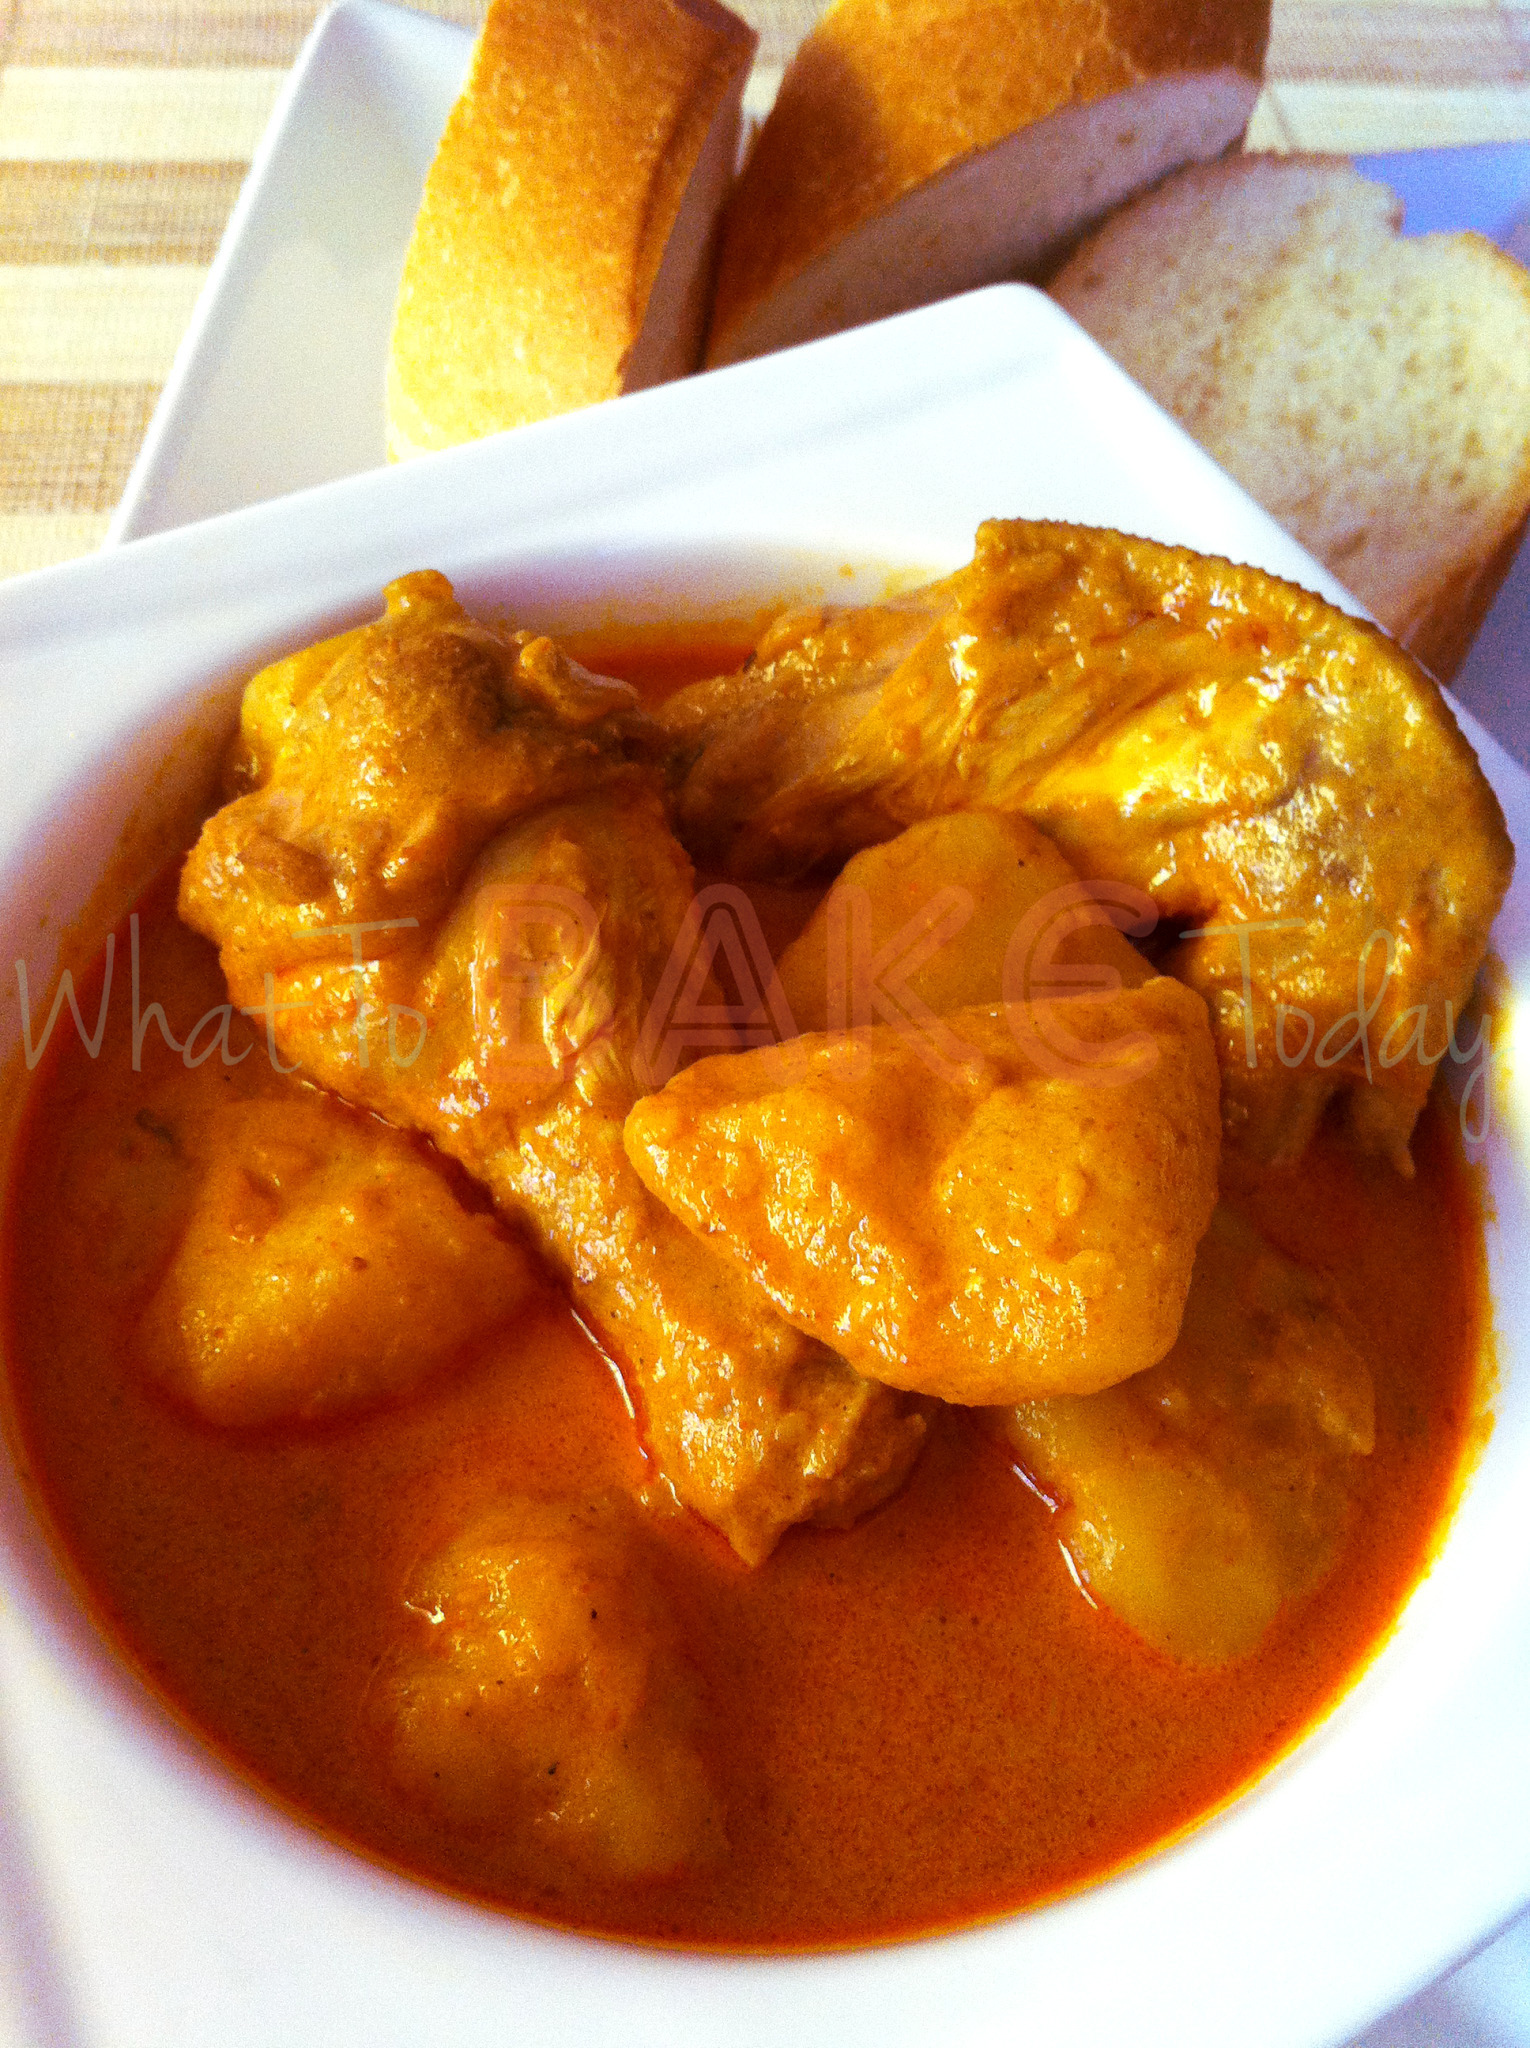 Singapore-style Curry Chicken with Potatoes